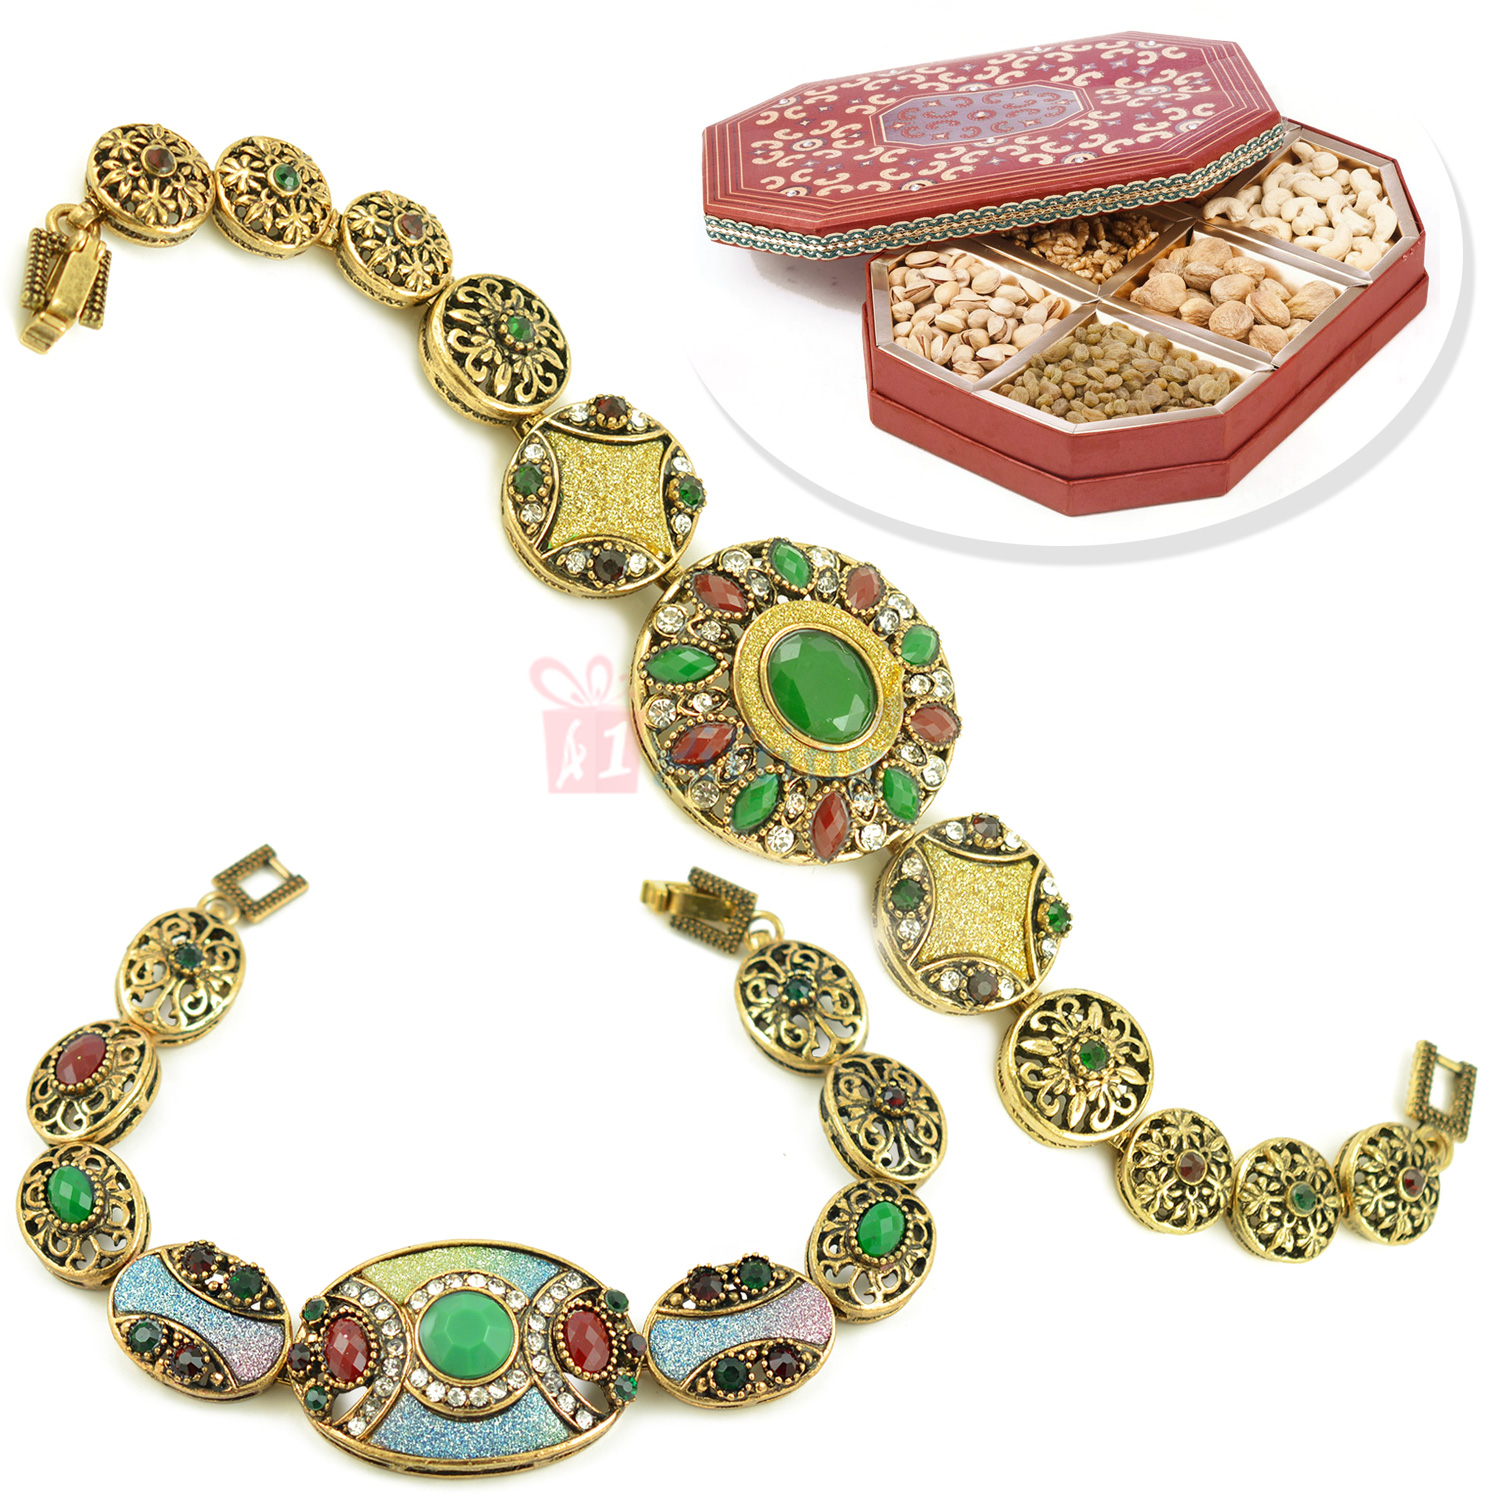 Two Antique Look Bracelet with 6 type Dryfruits Box